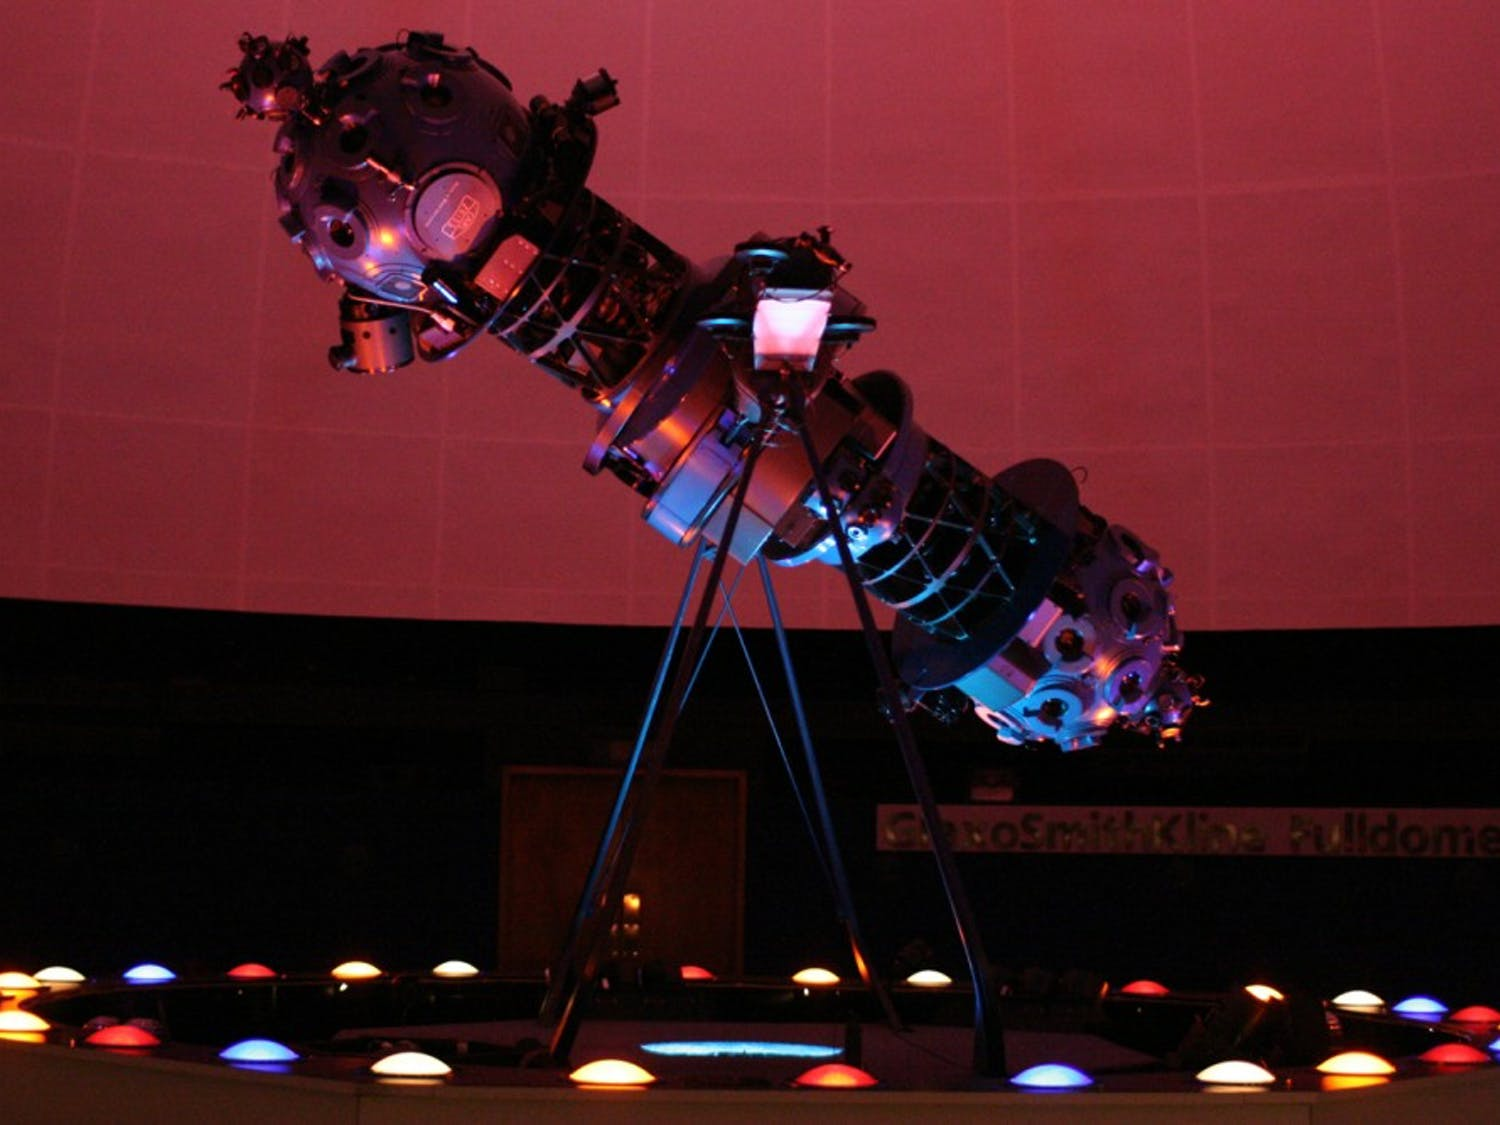 The Morehead Planetarium is in the process of phasing out the 42-year-old Zeiss VI Star Projector for a new digital projection system. The digital projectors will not be visible like the current projector, making the planetarium experience much different.